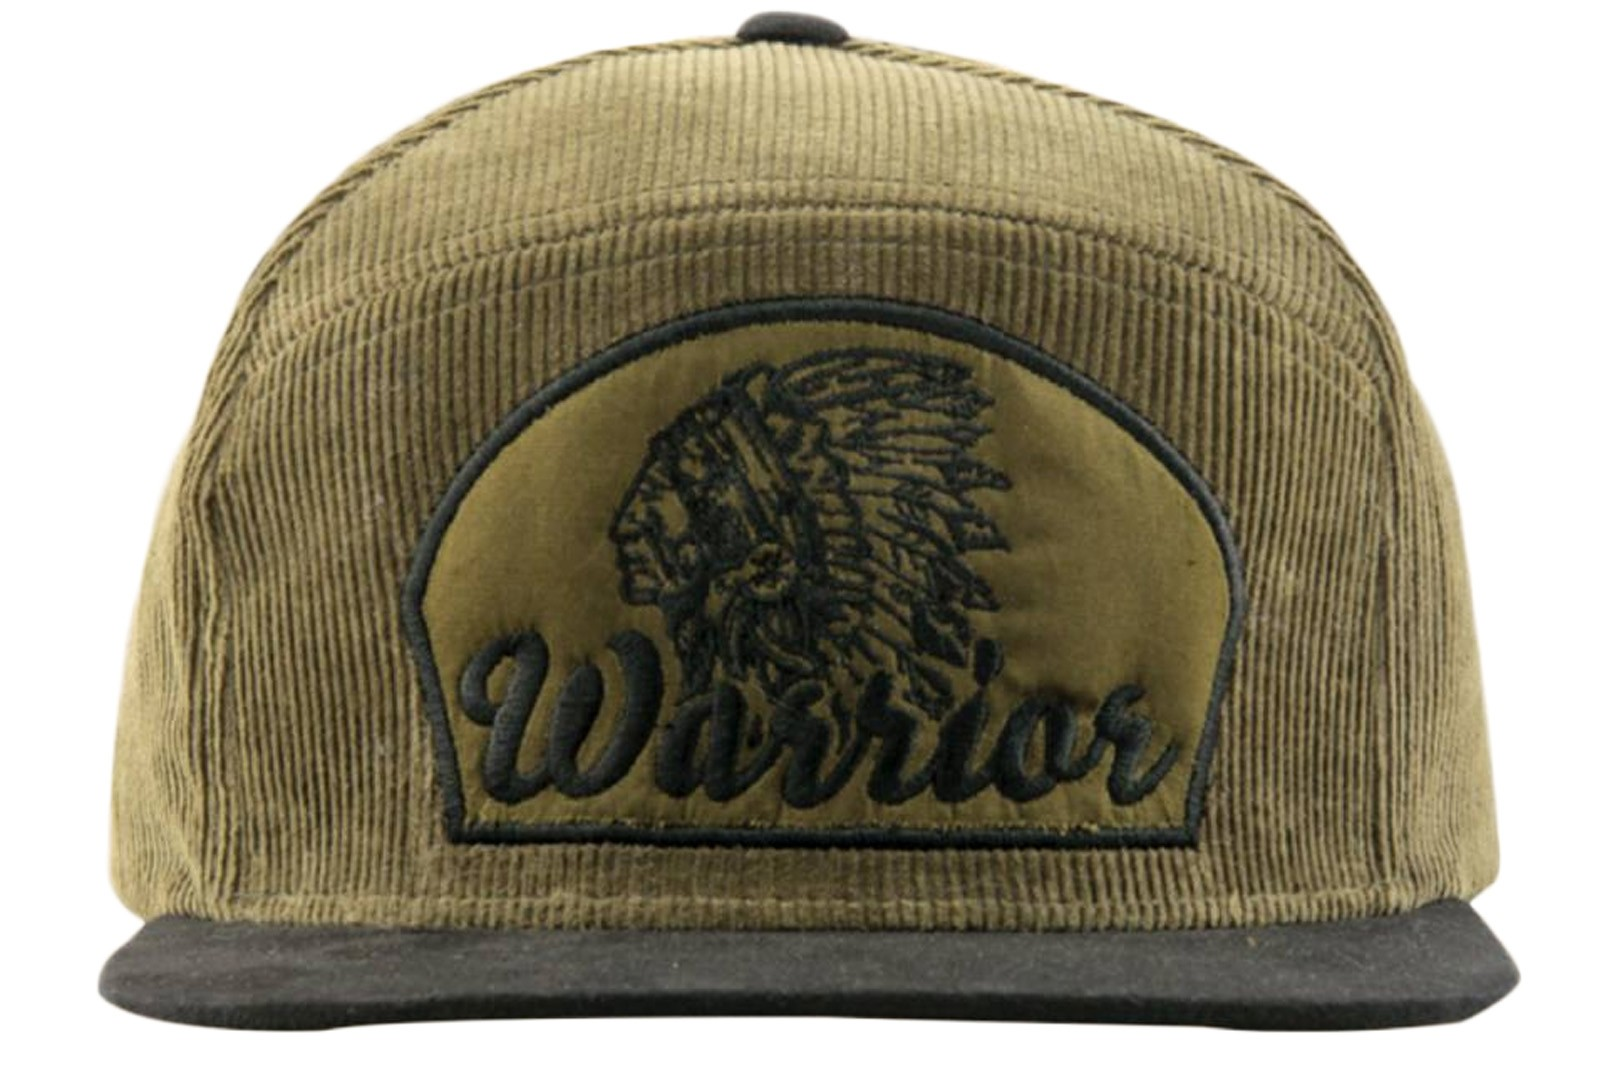 Supercobra Clothing Company - Warrior Snapback Cap Front